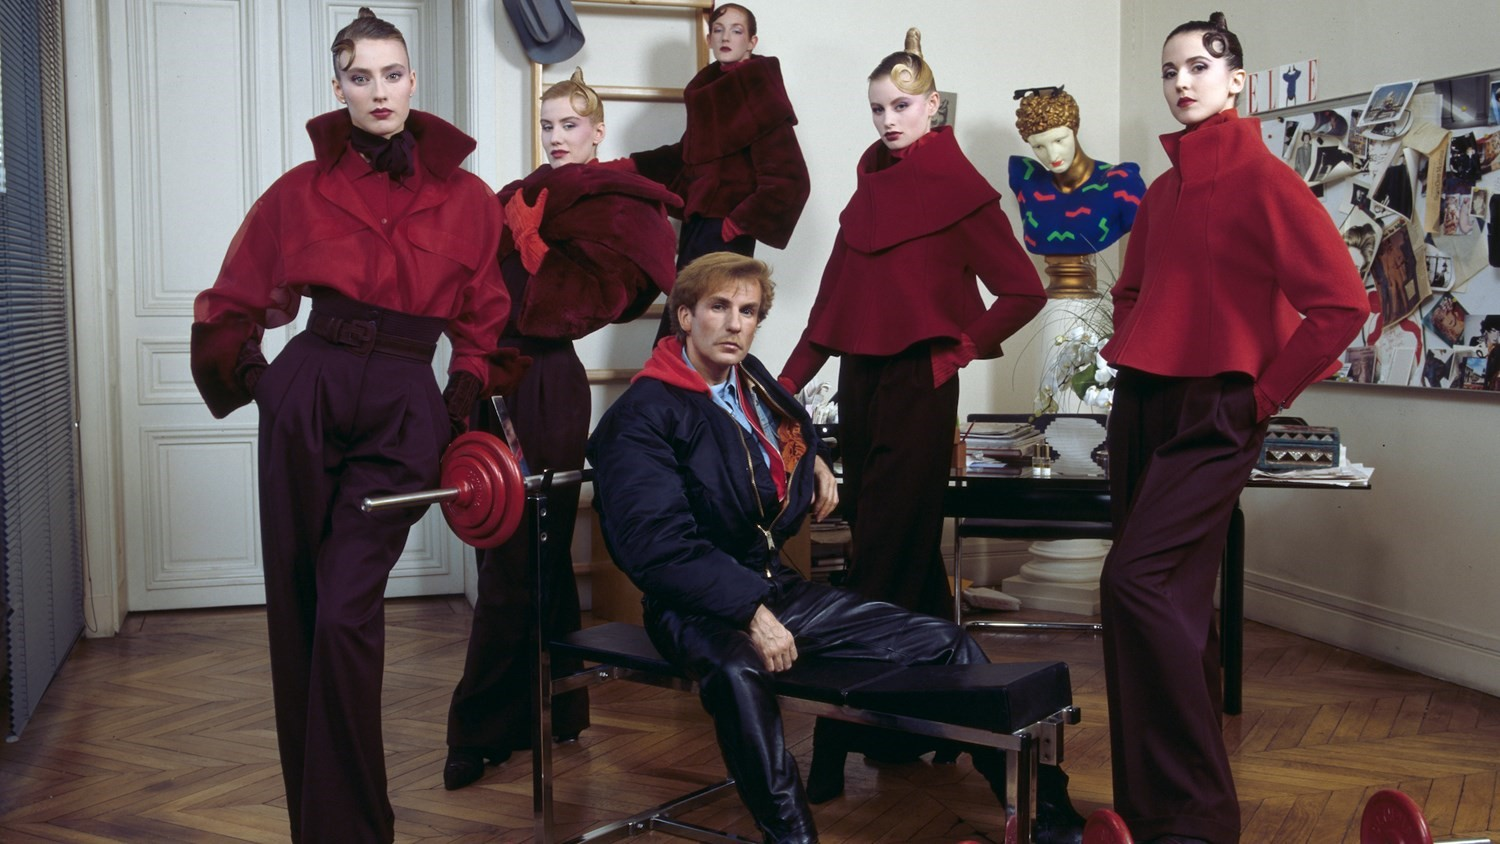 Claude Montana fashion designer 1980s